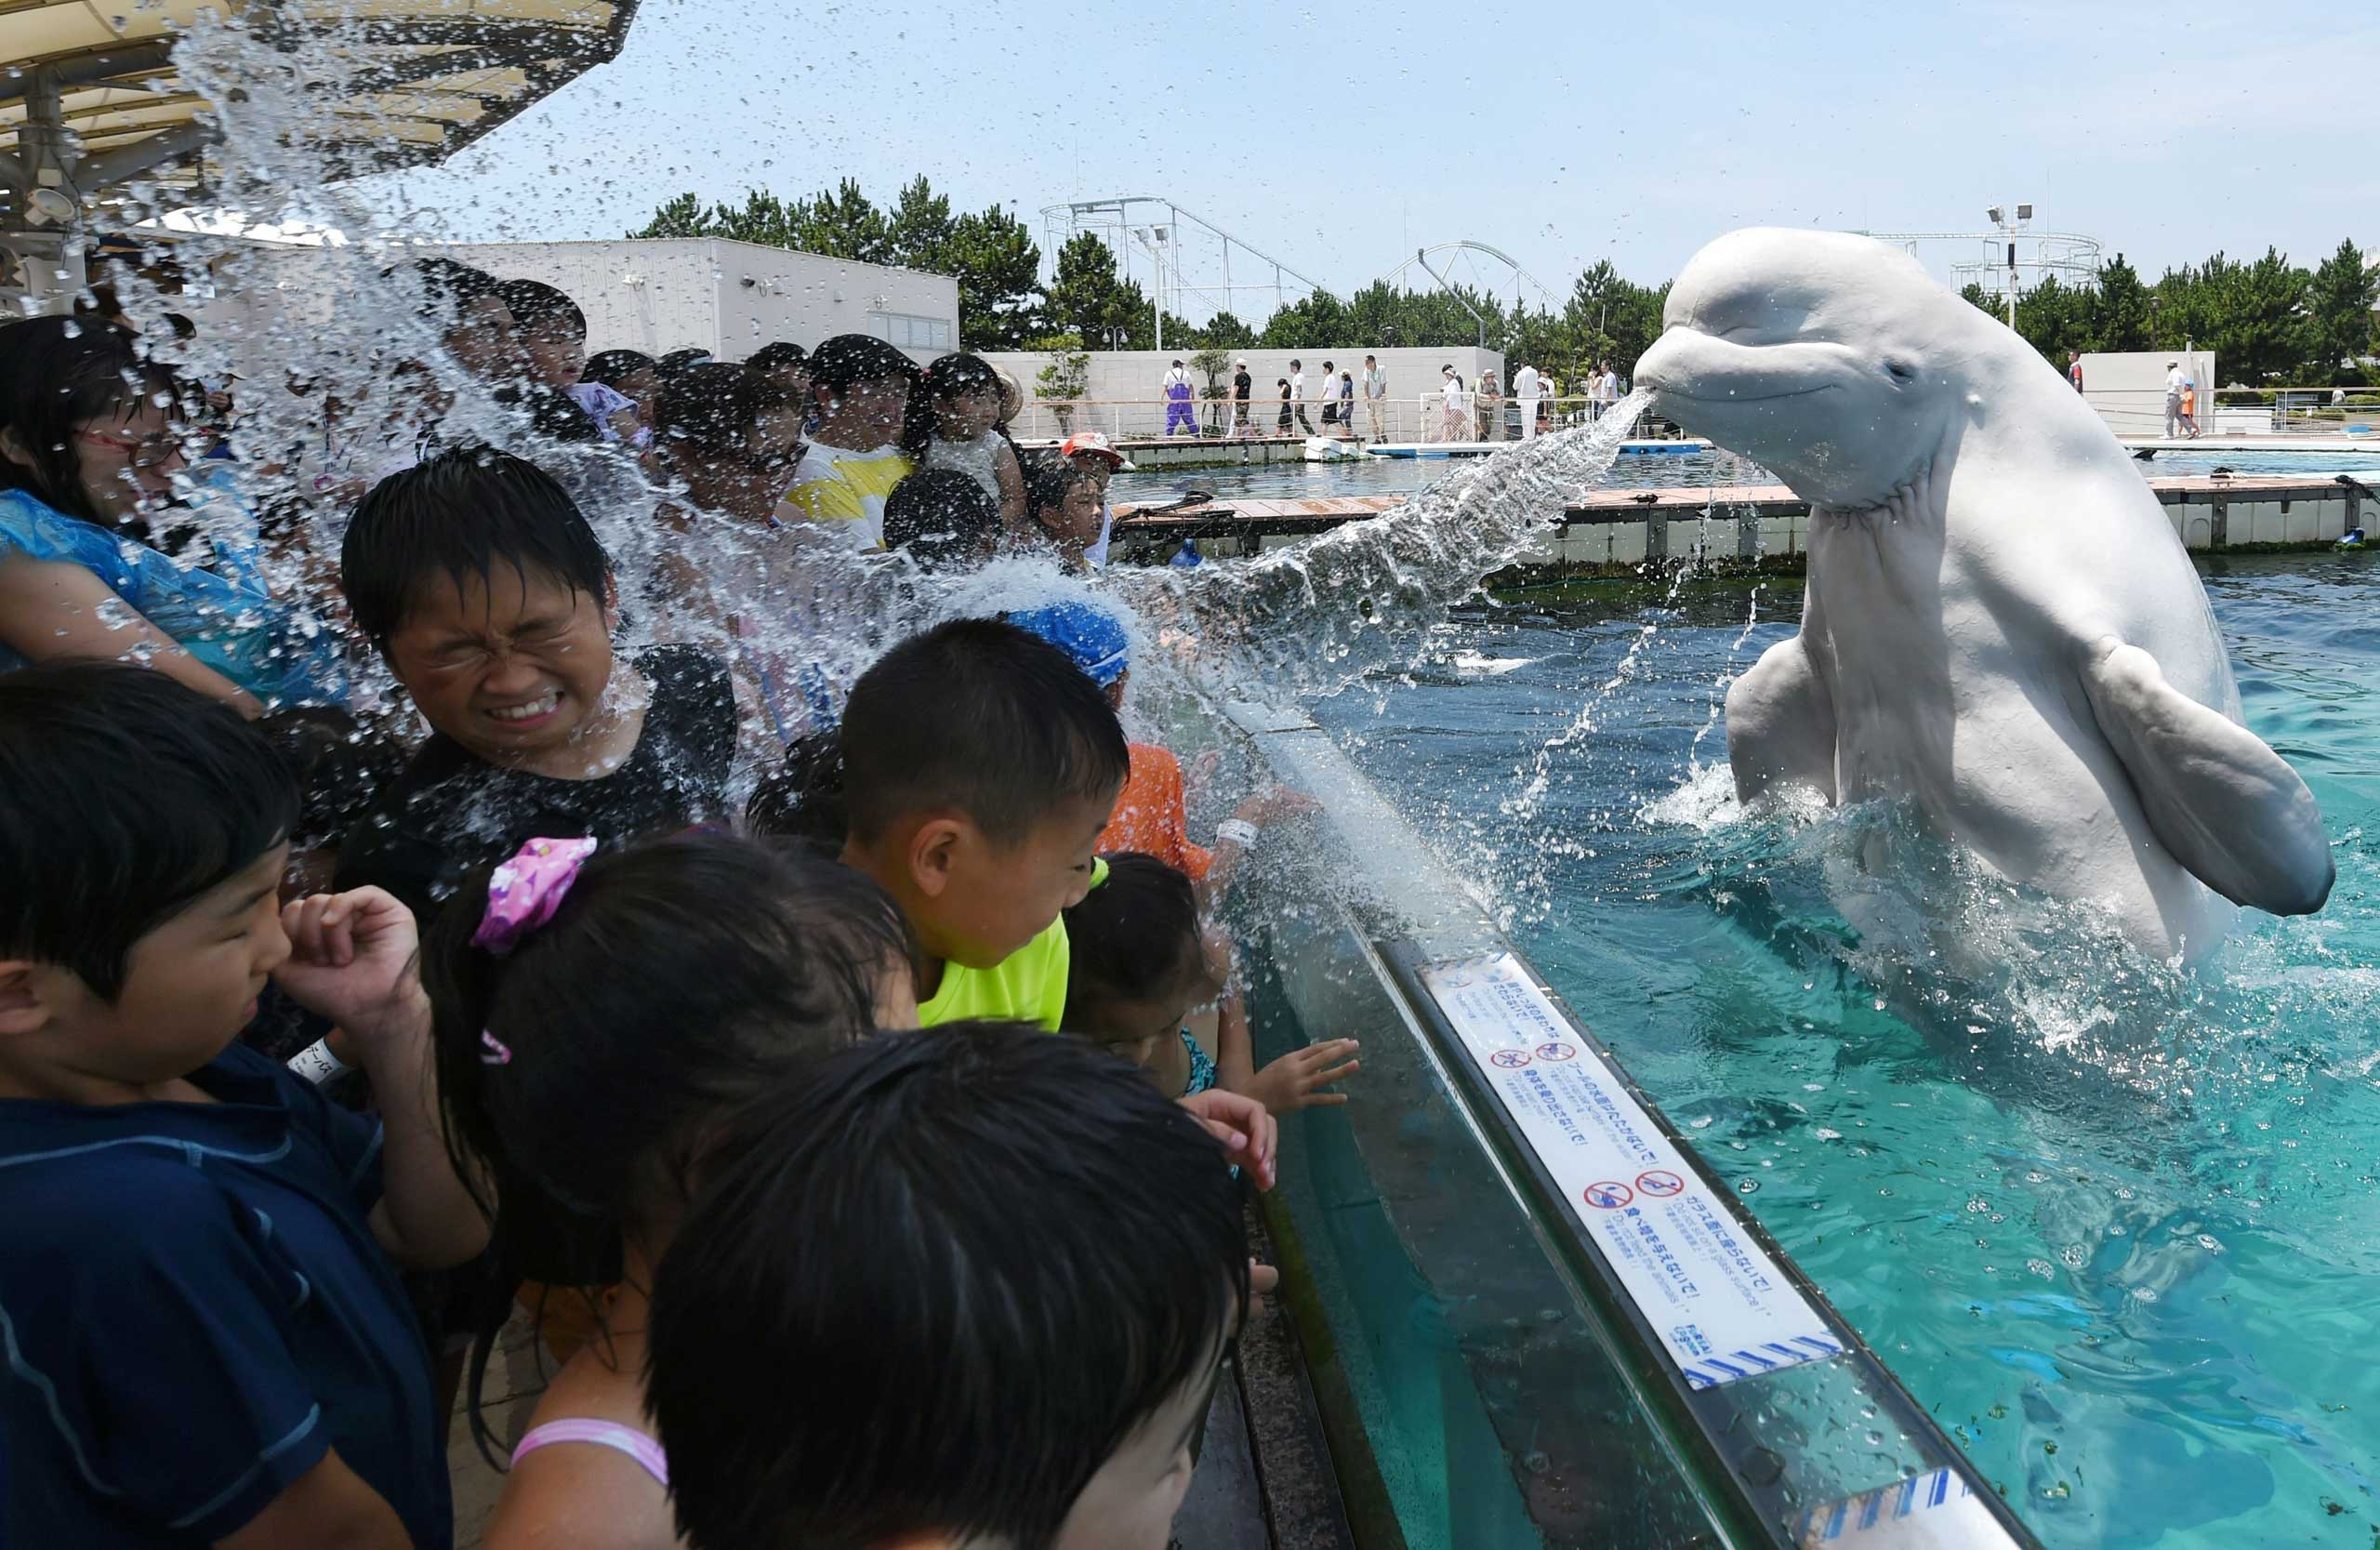 A beluga whale sprays water towards visitors during a summer attraction at the Hakkeijima Sea Paradise aquarium in Yokohama, suburban Tokyo. Tokyo's temperature climbed over 34 degree Celsius on July 20, one day after the end of the rainy season.